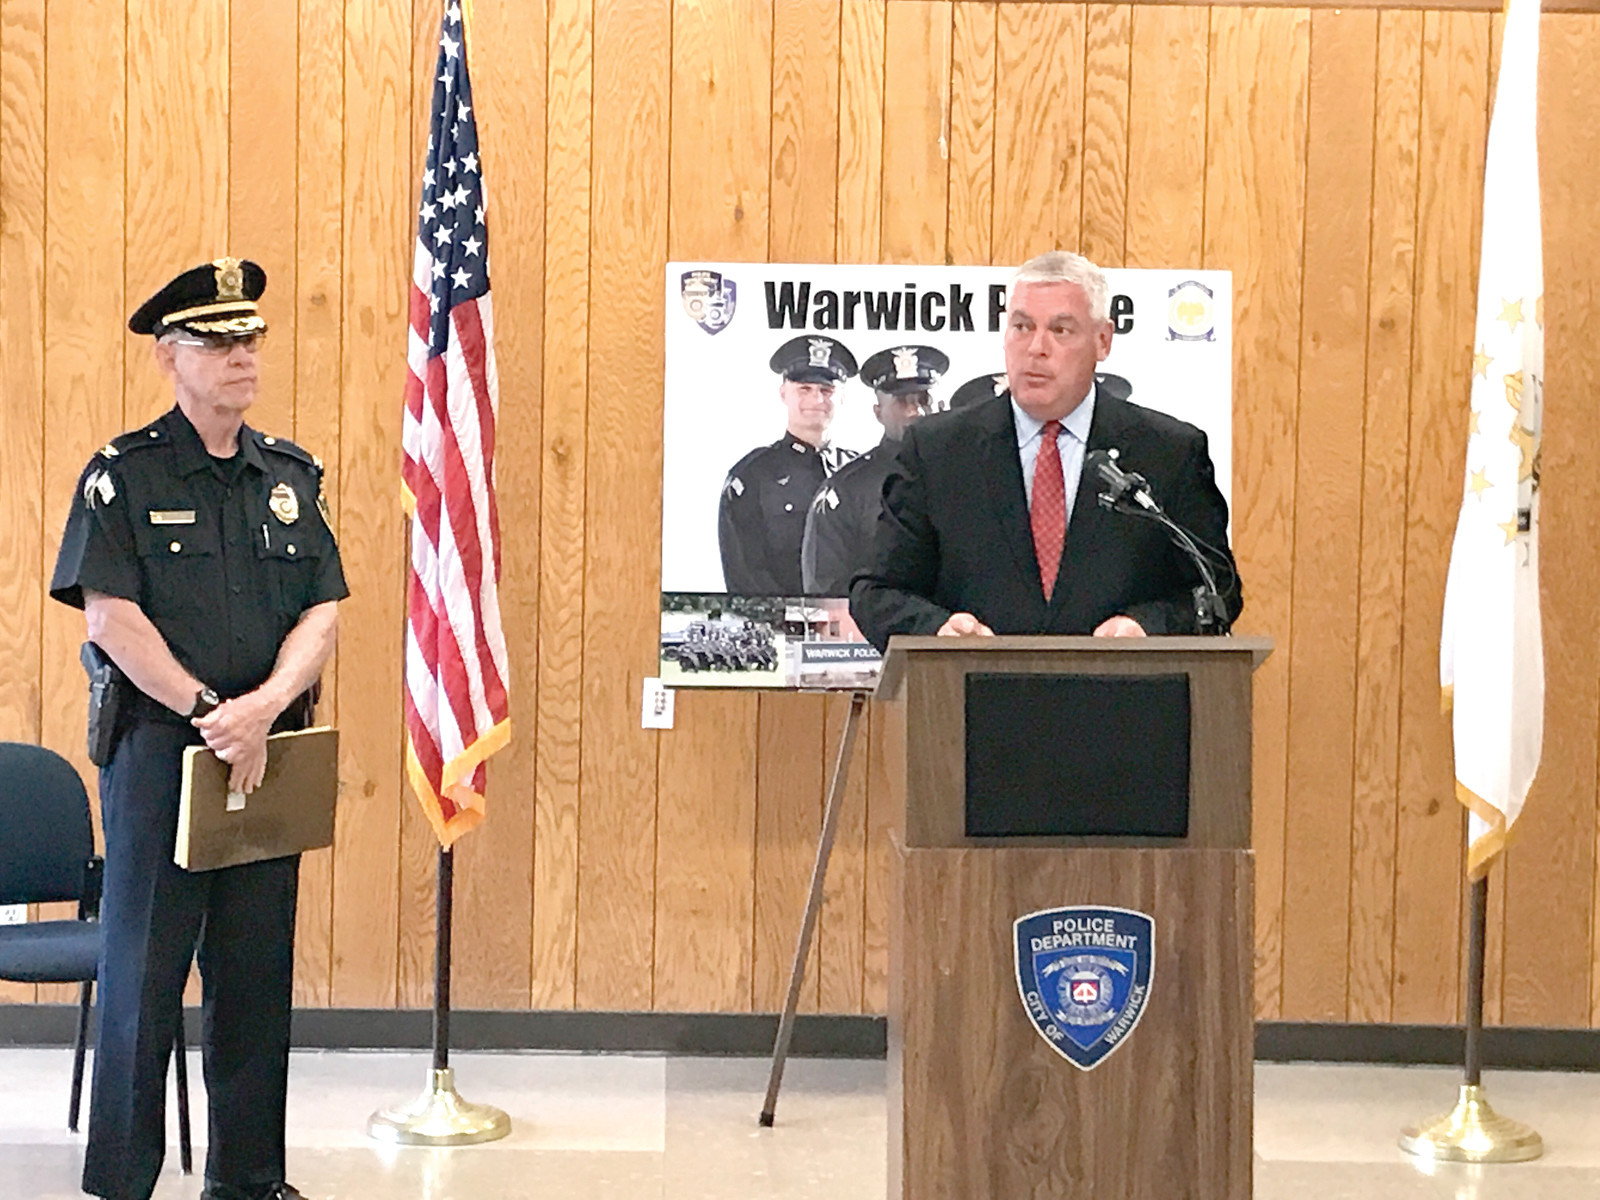 CALLING ALL RECRUITS: Colonel McCartney (left) joins with Mayor Avedisian at a press conference to promote the recruitment drive that ends on Sept. 1.